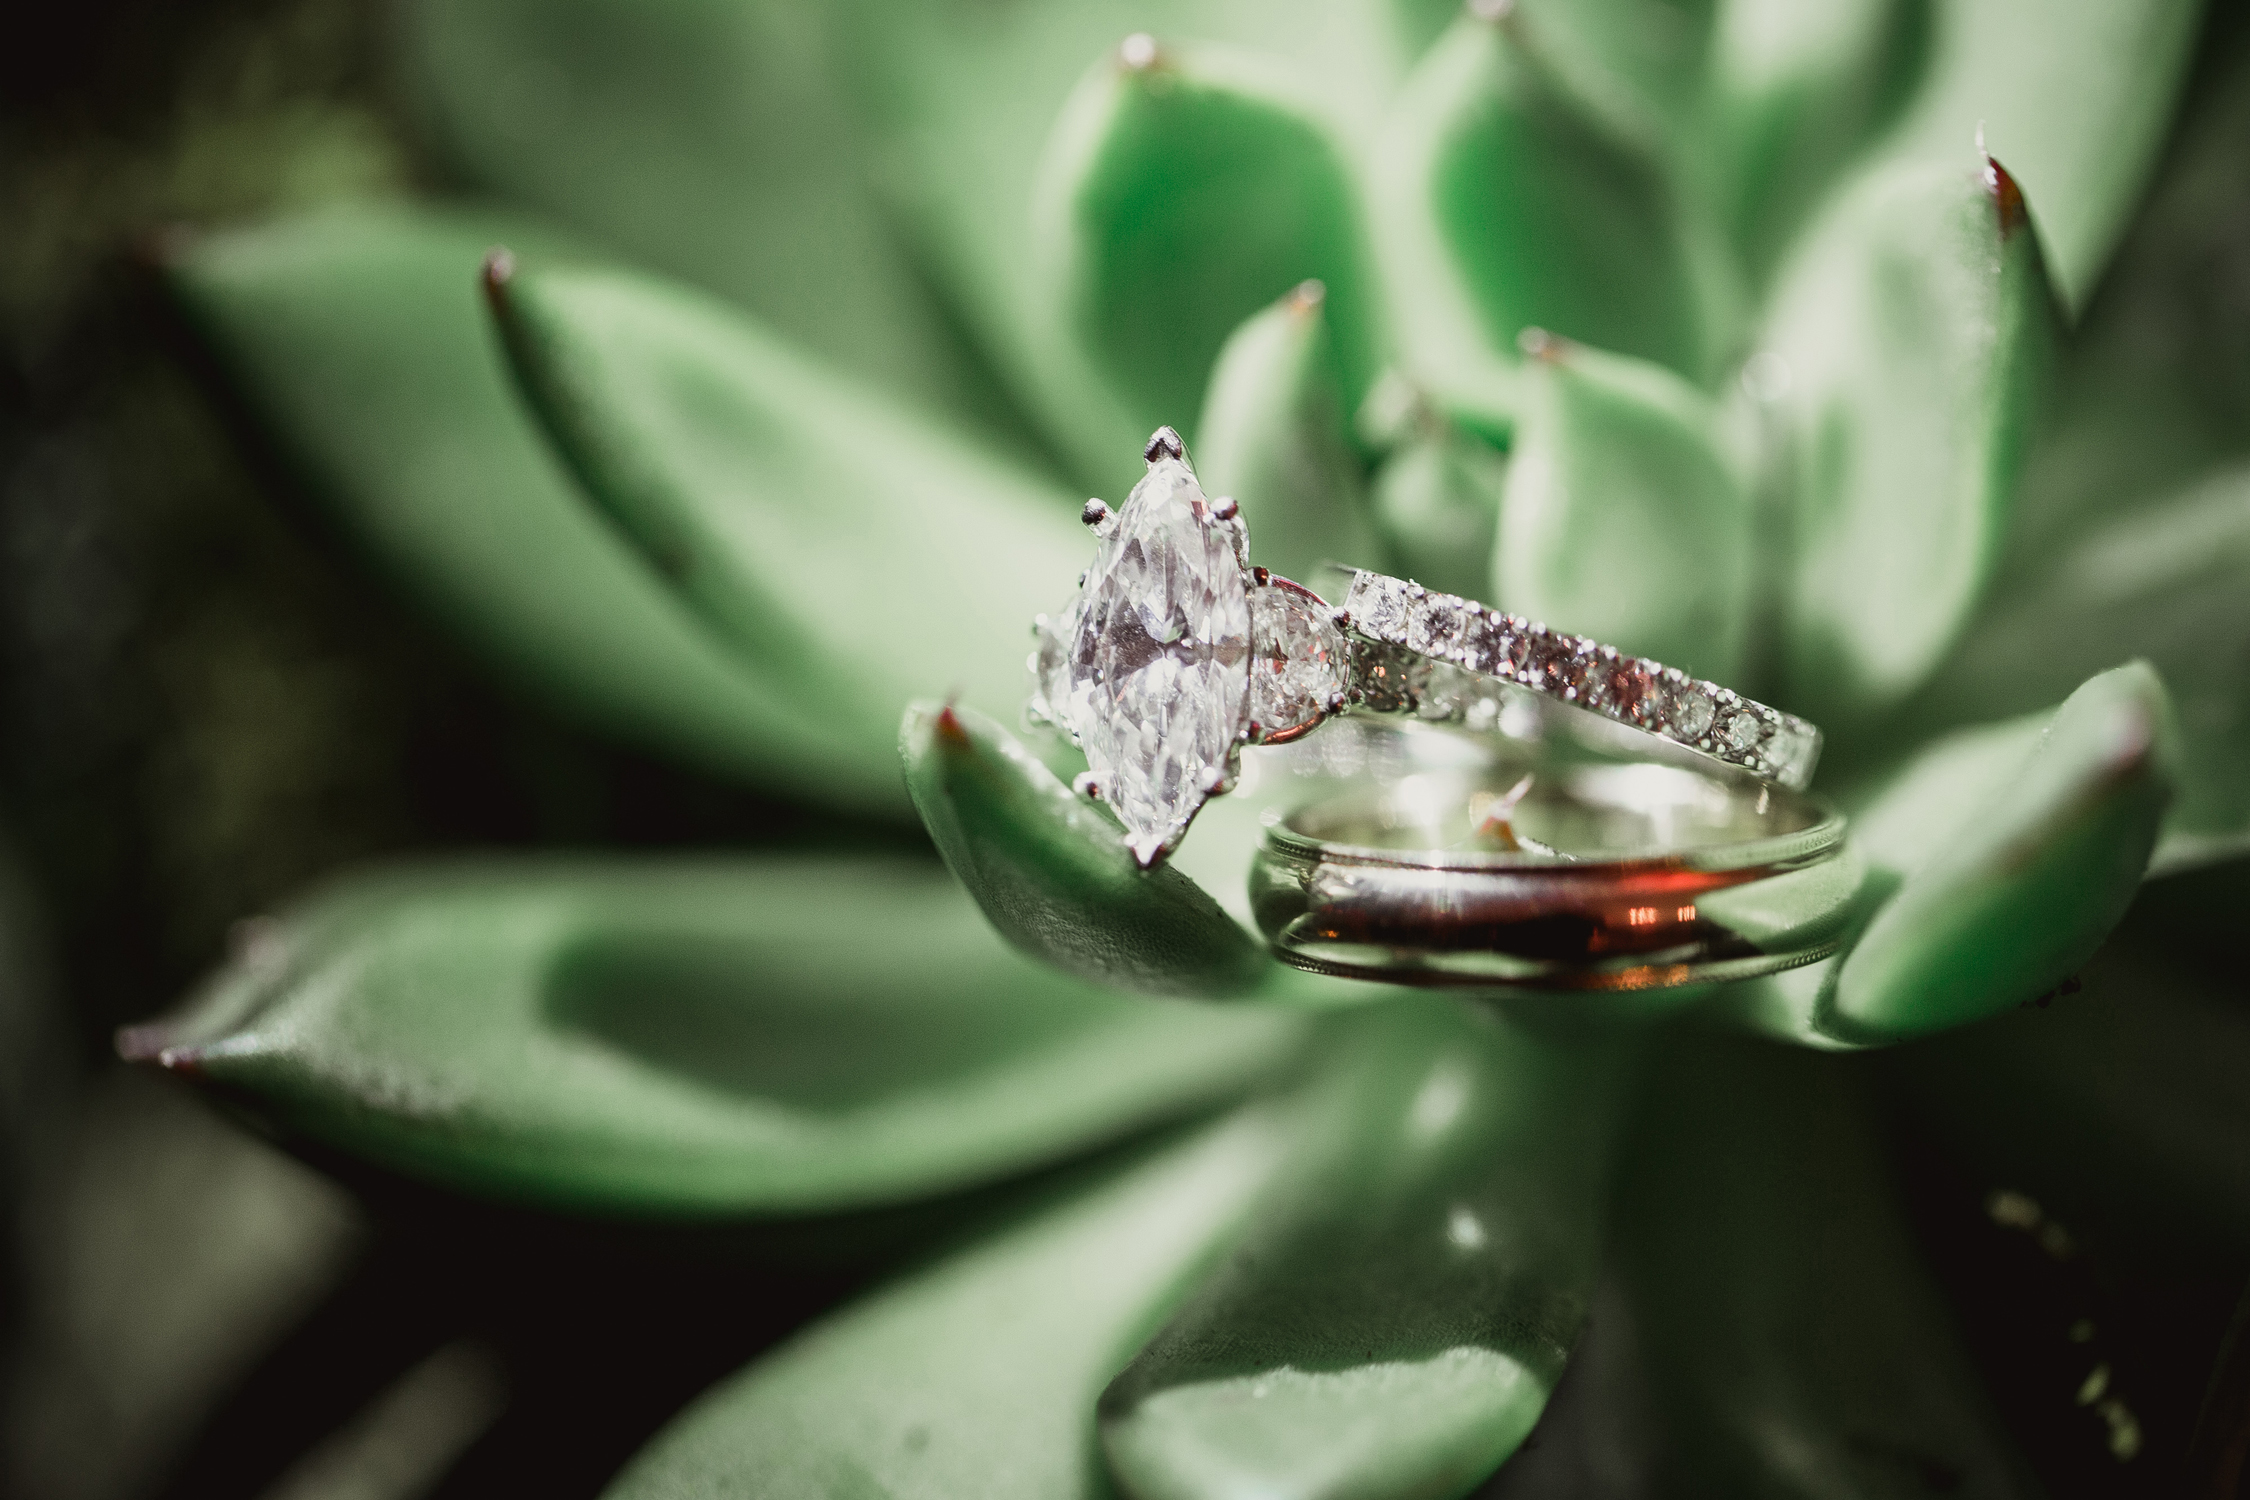 engagement ring, wedding ring photo in succulent plant